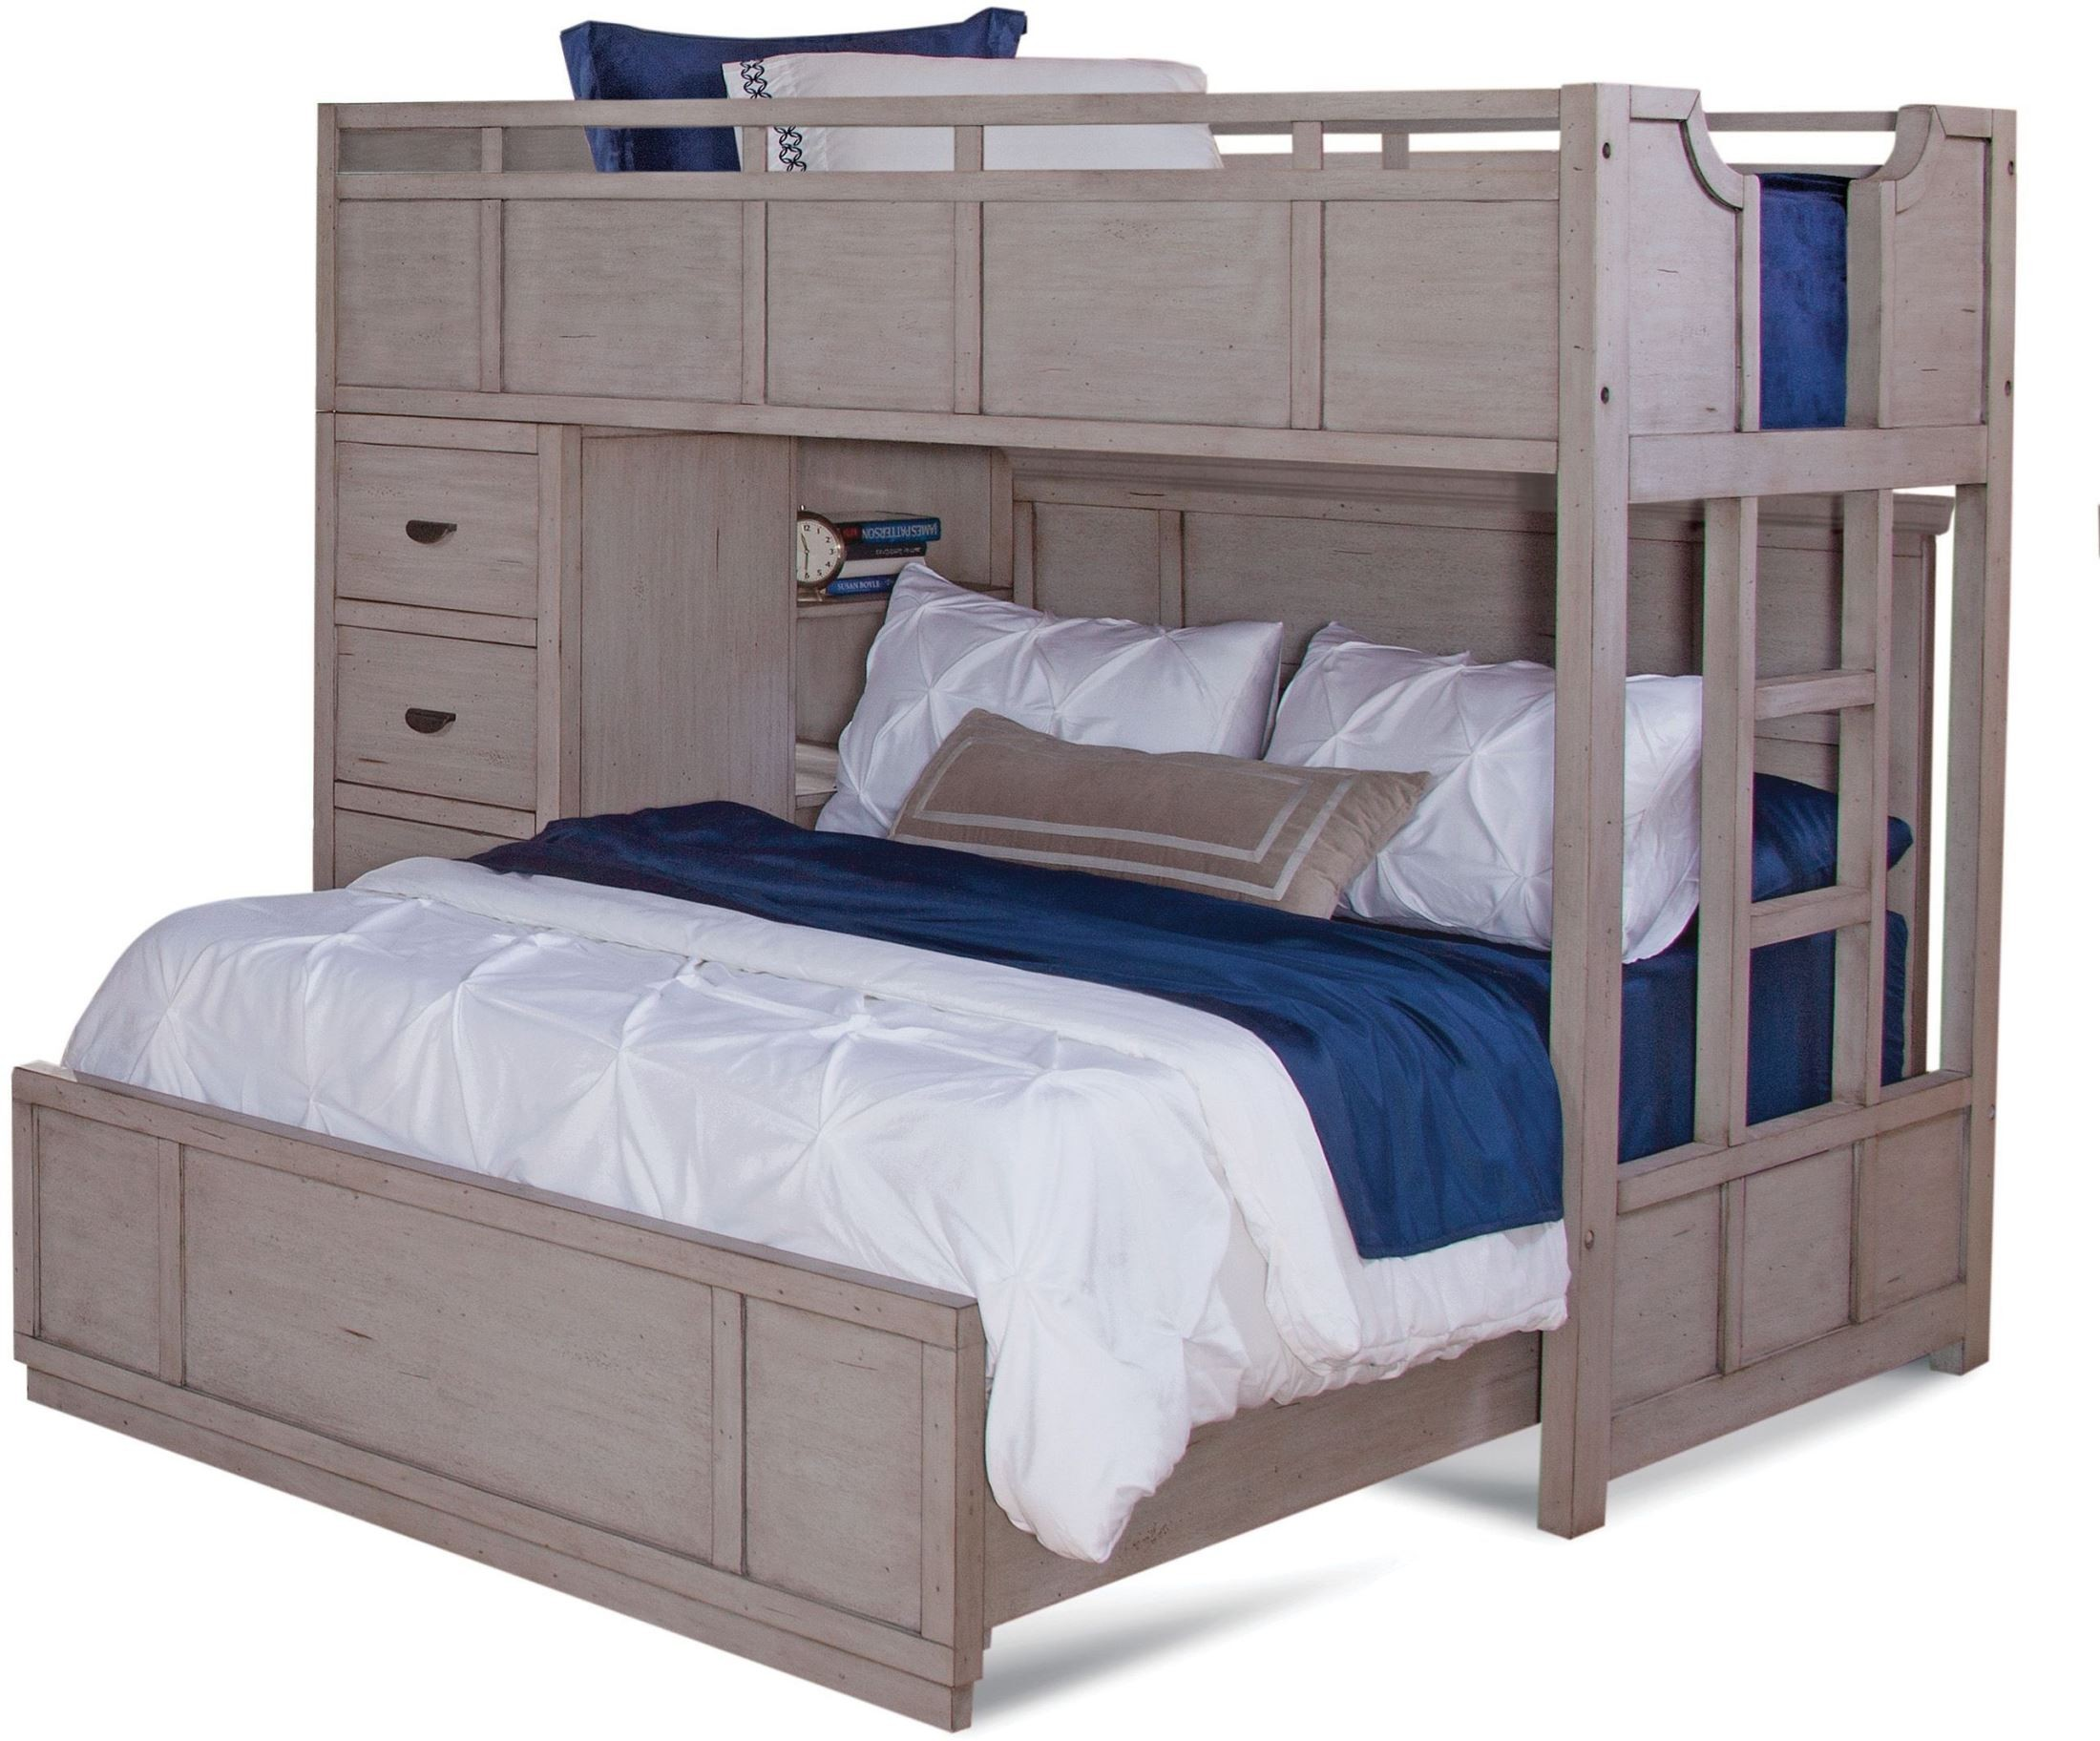 provo driftwood patina twin over full loft bed from american woodcrafters coleman furniture. Black Bedroom Furniture Sets. Home Design Ideas